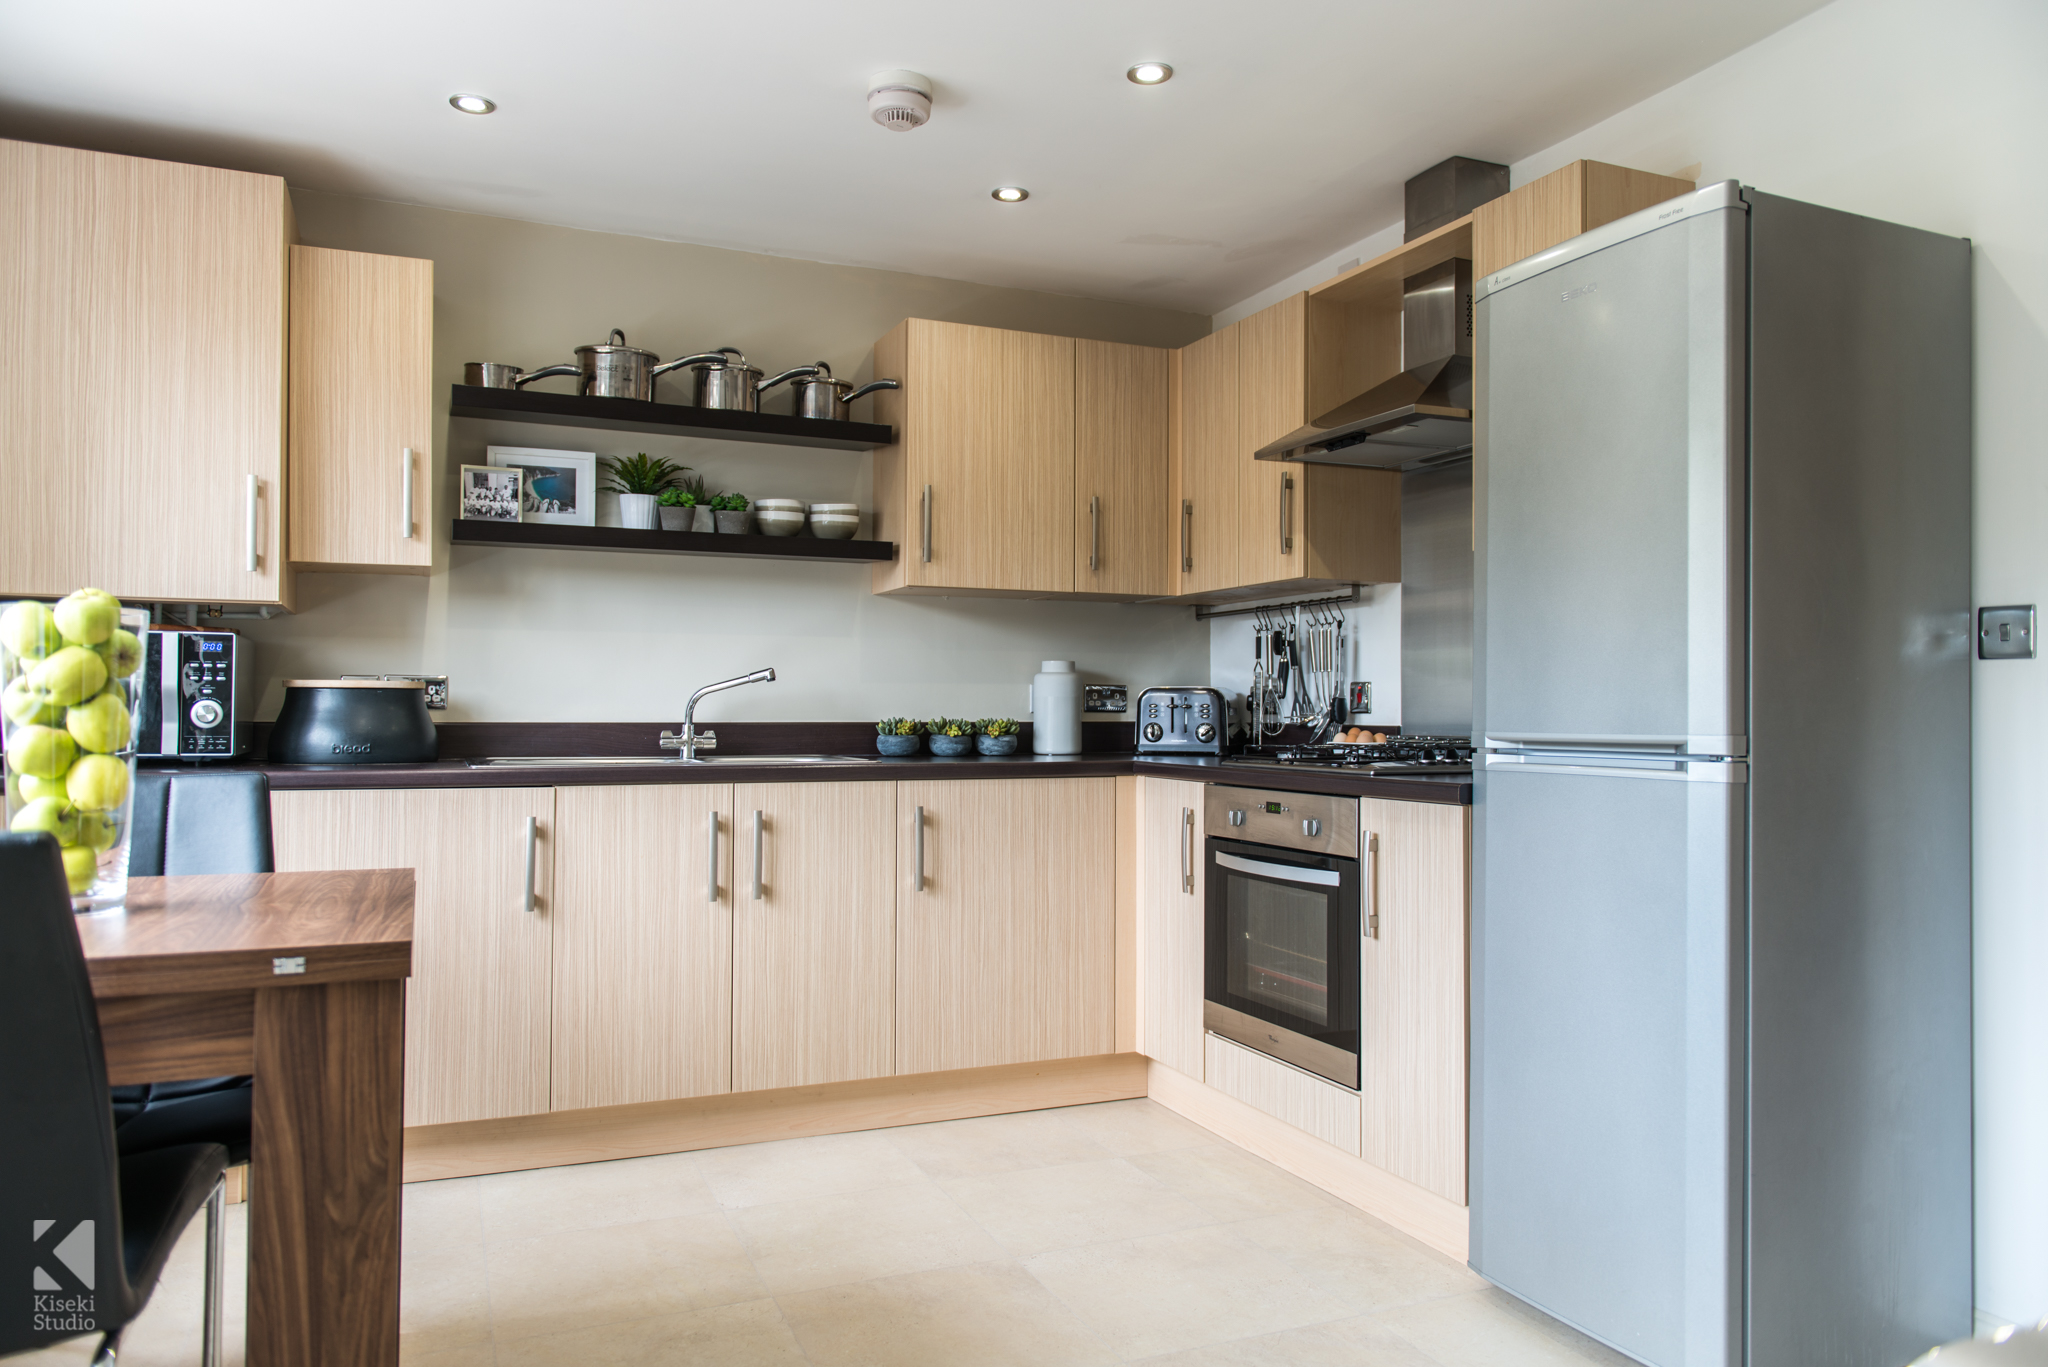 Modern Property Interior Kitchen Neutral Furnished Fresh Bright Warm in Baildon